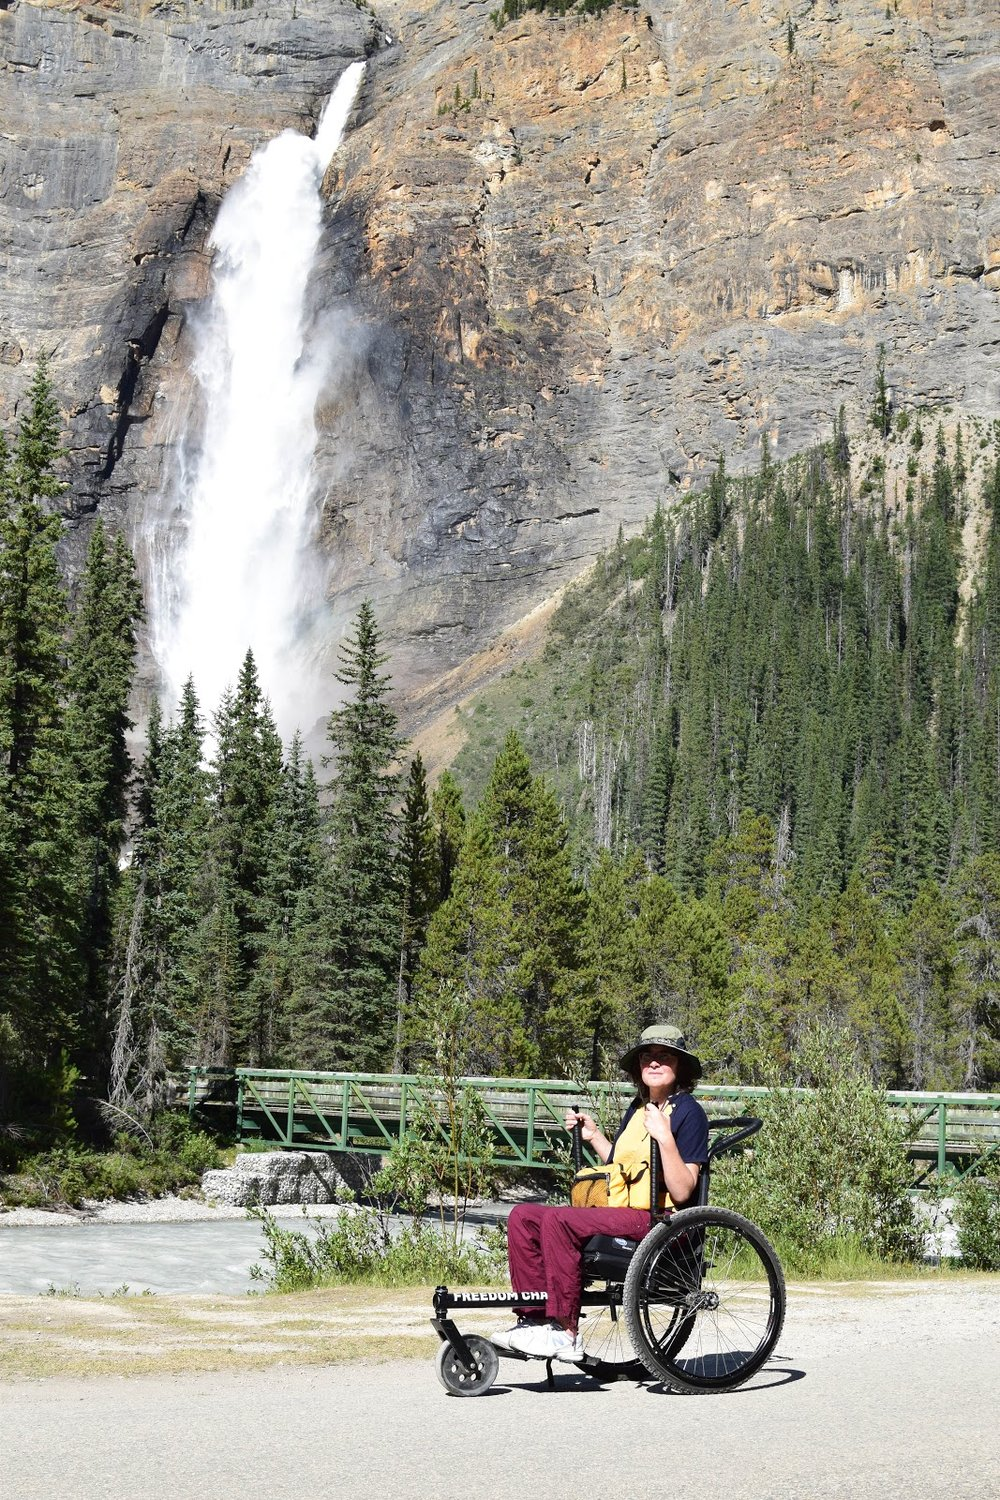 Tak Falls in Yoho National Park